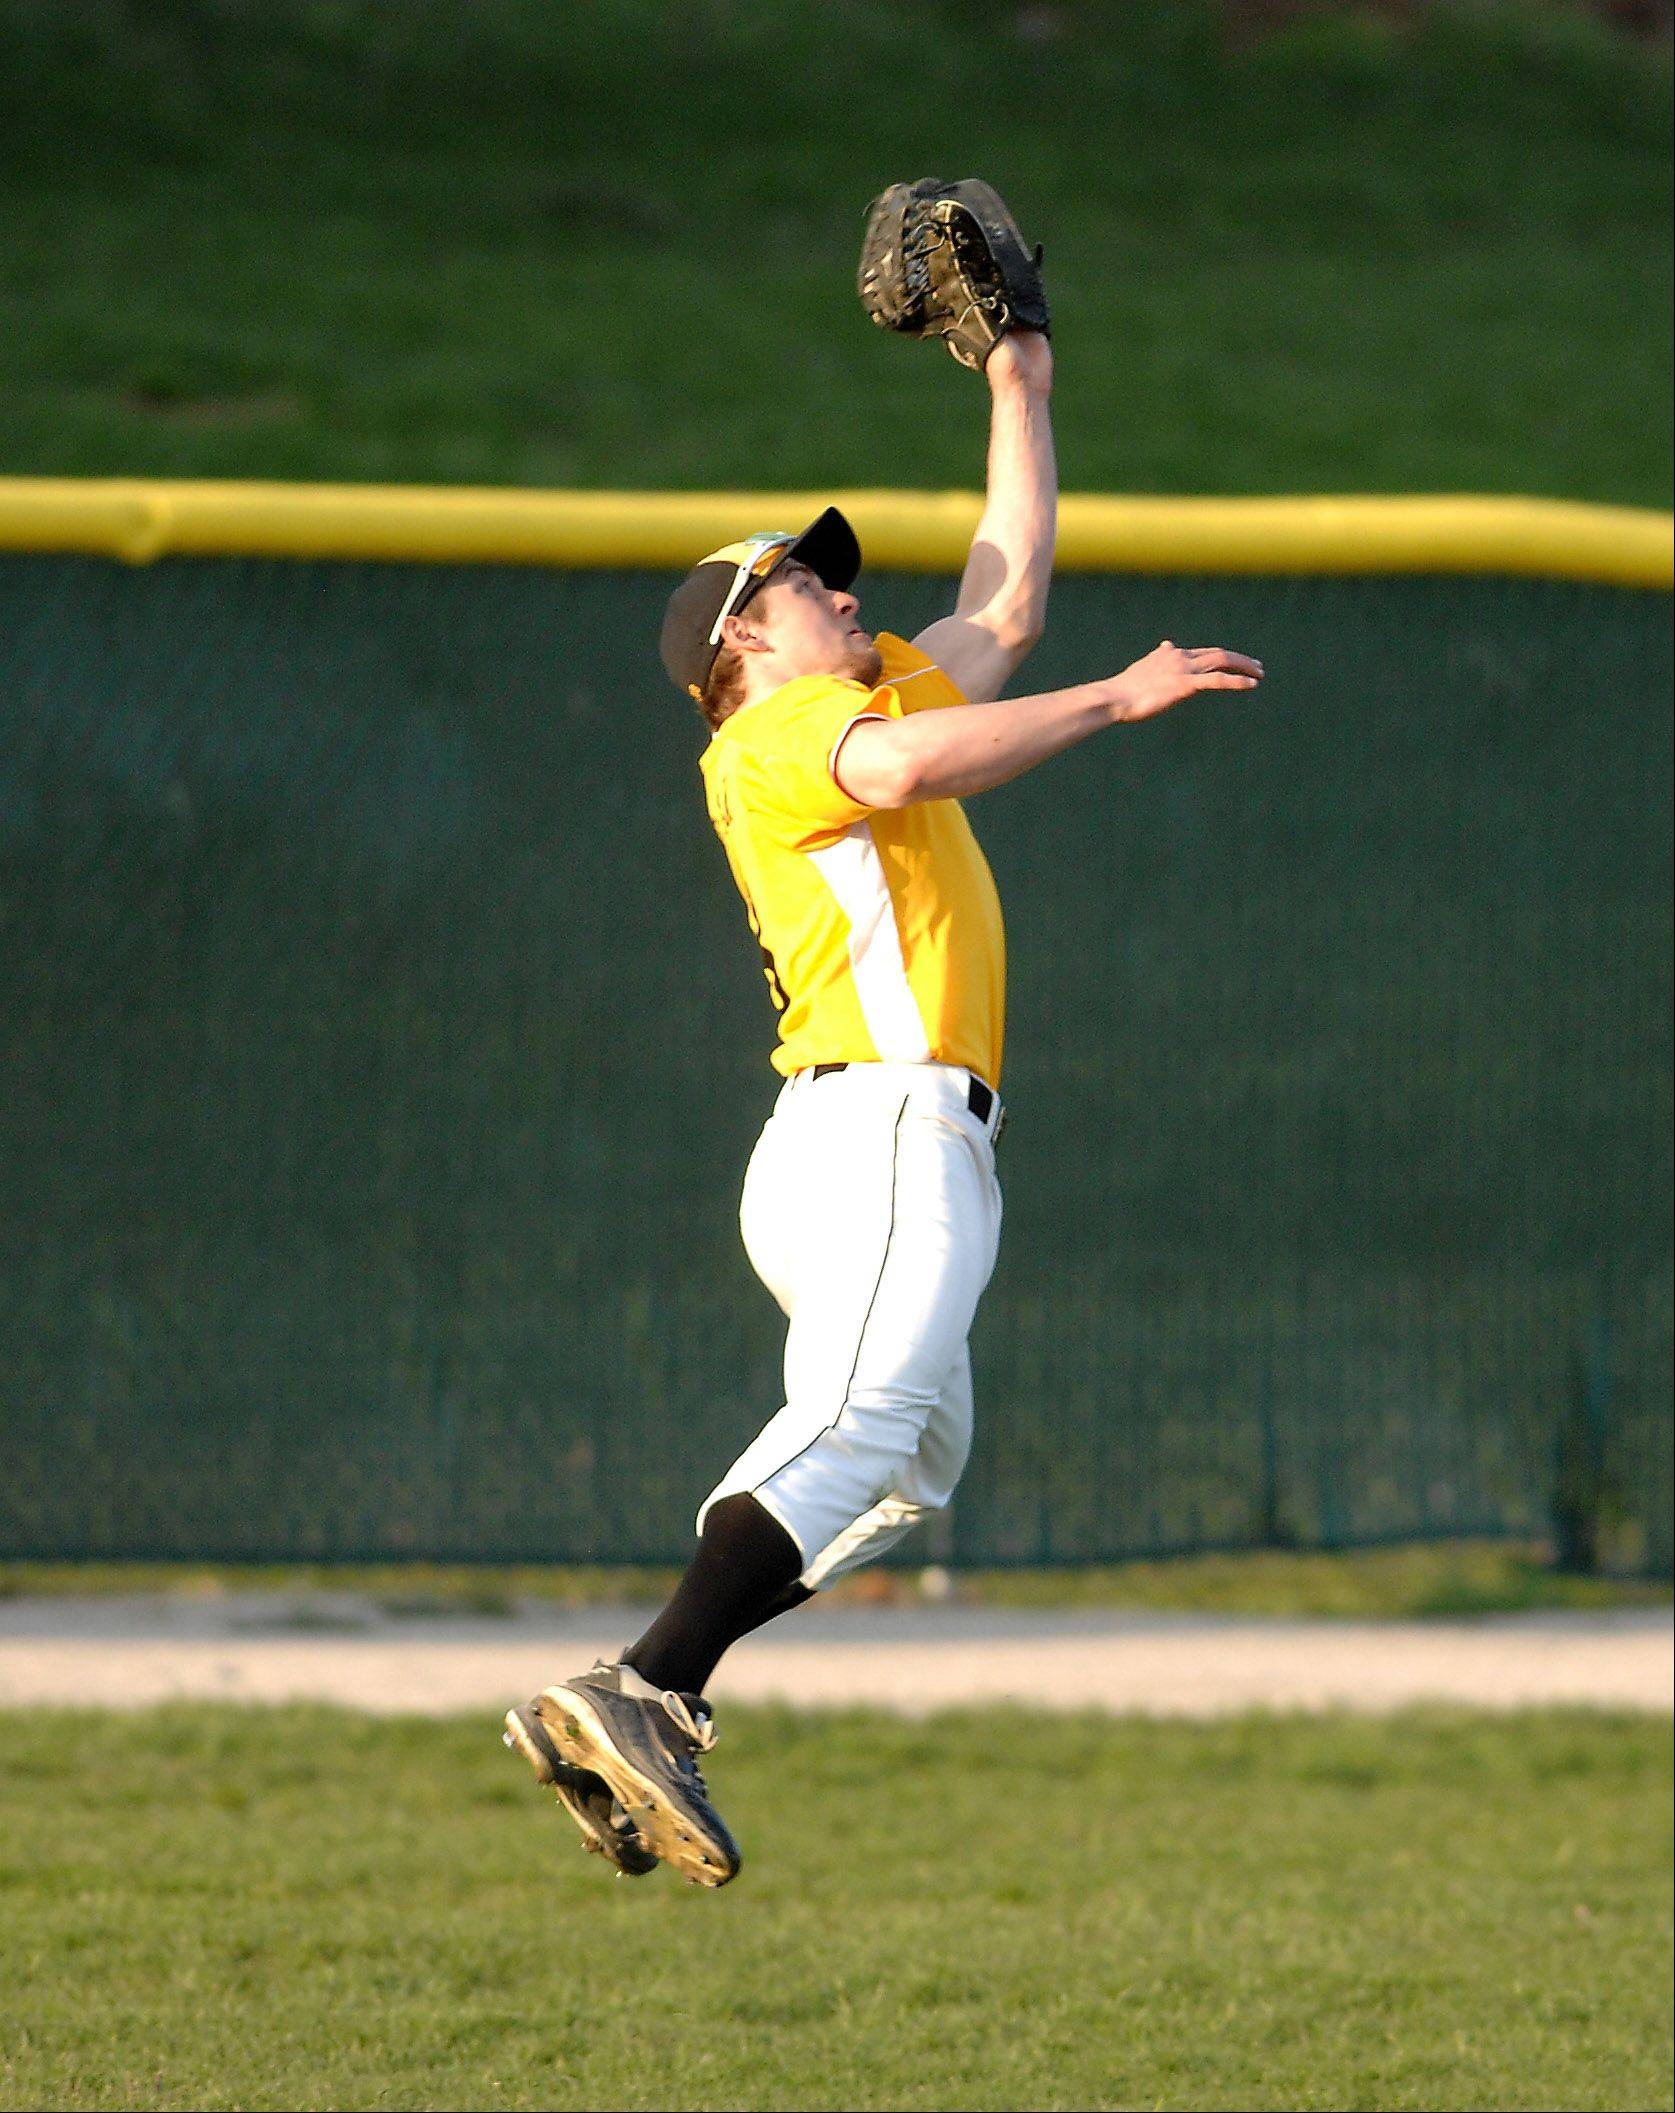 Connor Conzelman of Jacobs makes a leaping catch in left field against Cary-Grove during Friday's game in Cary.